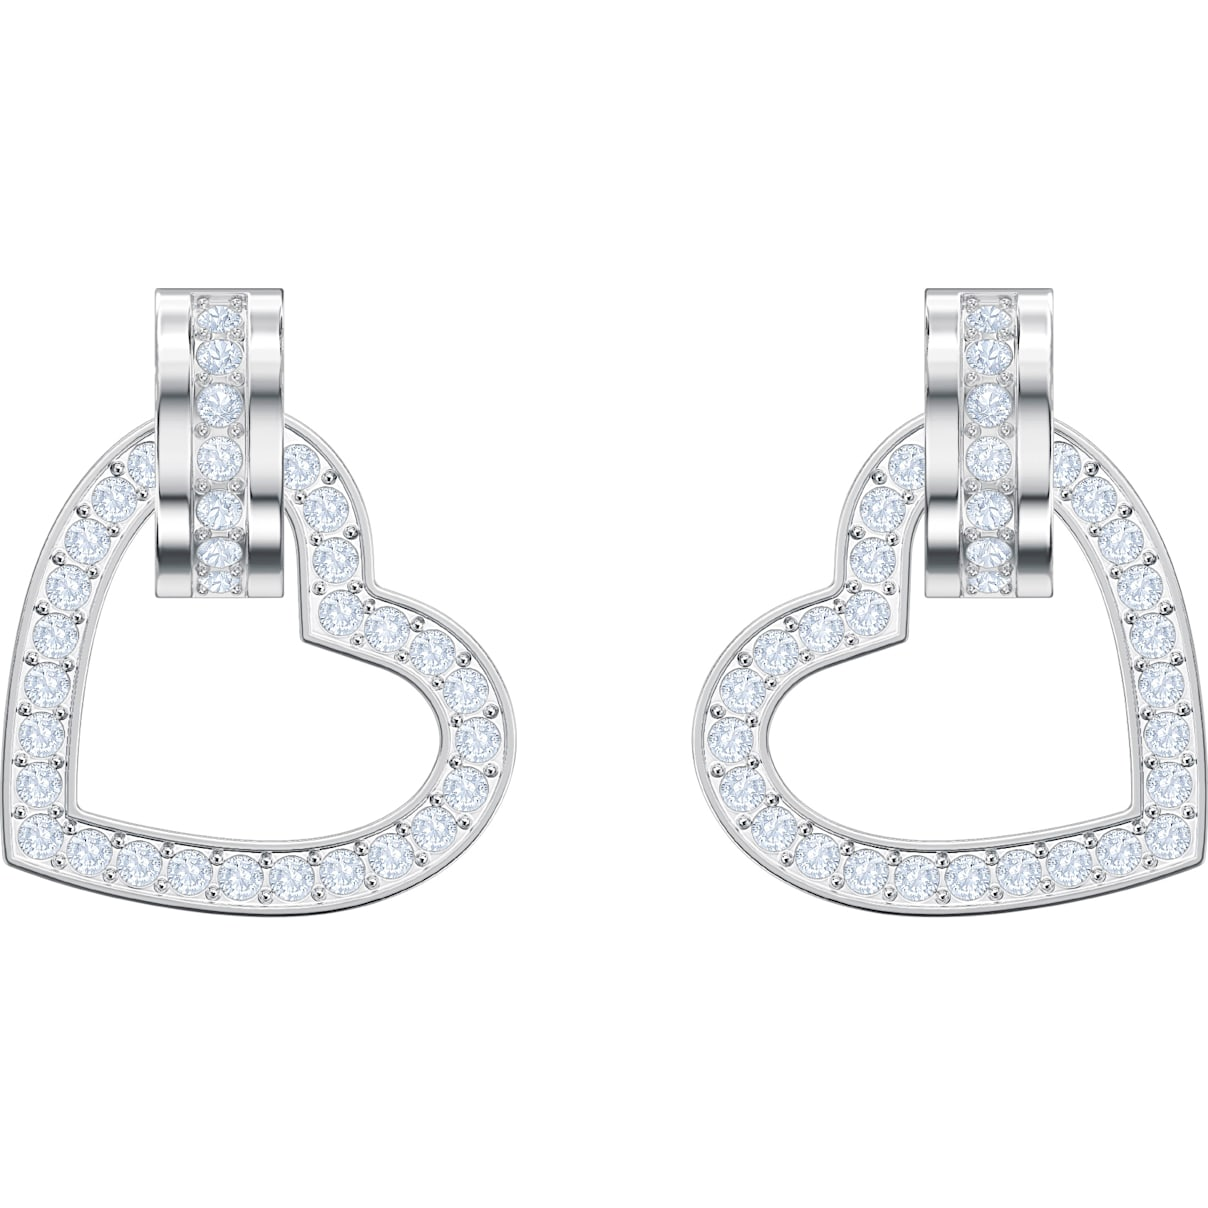 Swarovski Lovely Pierced Earrings, White, Rhodium plated